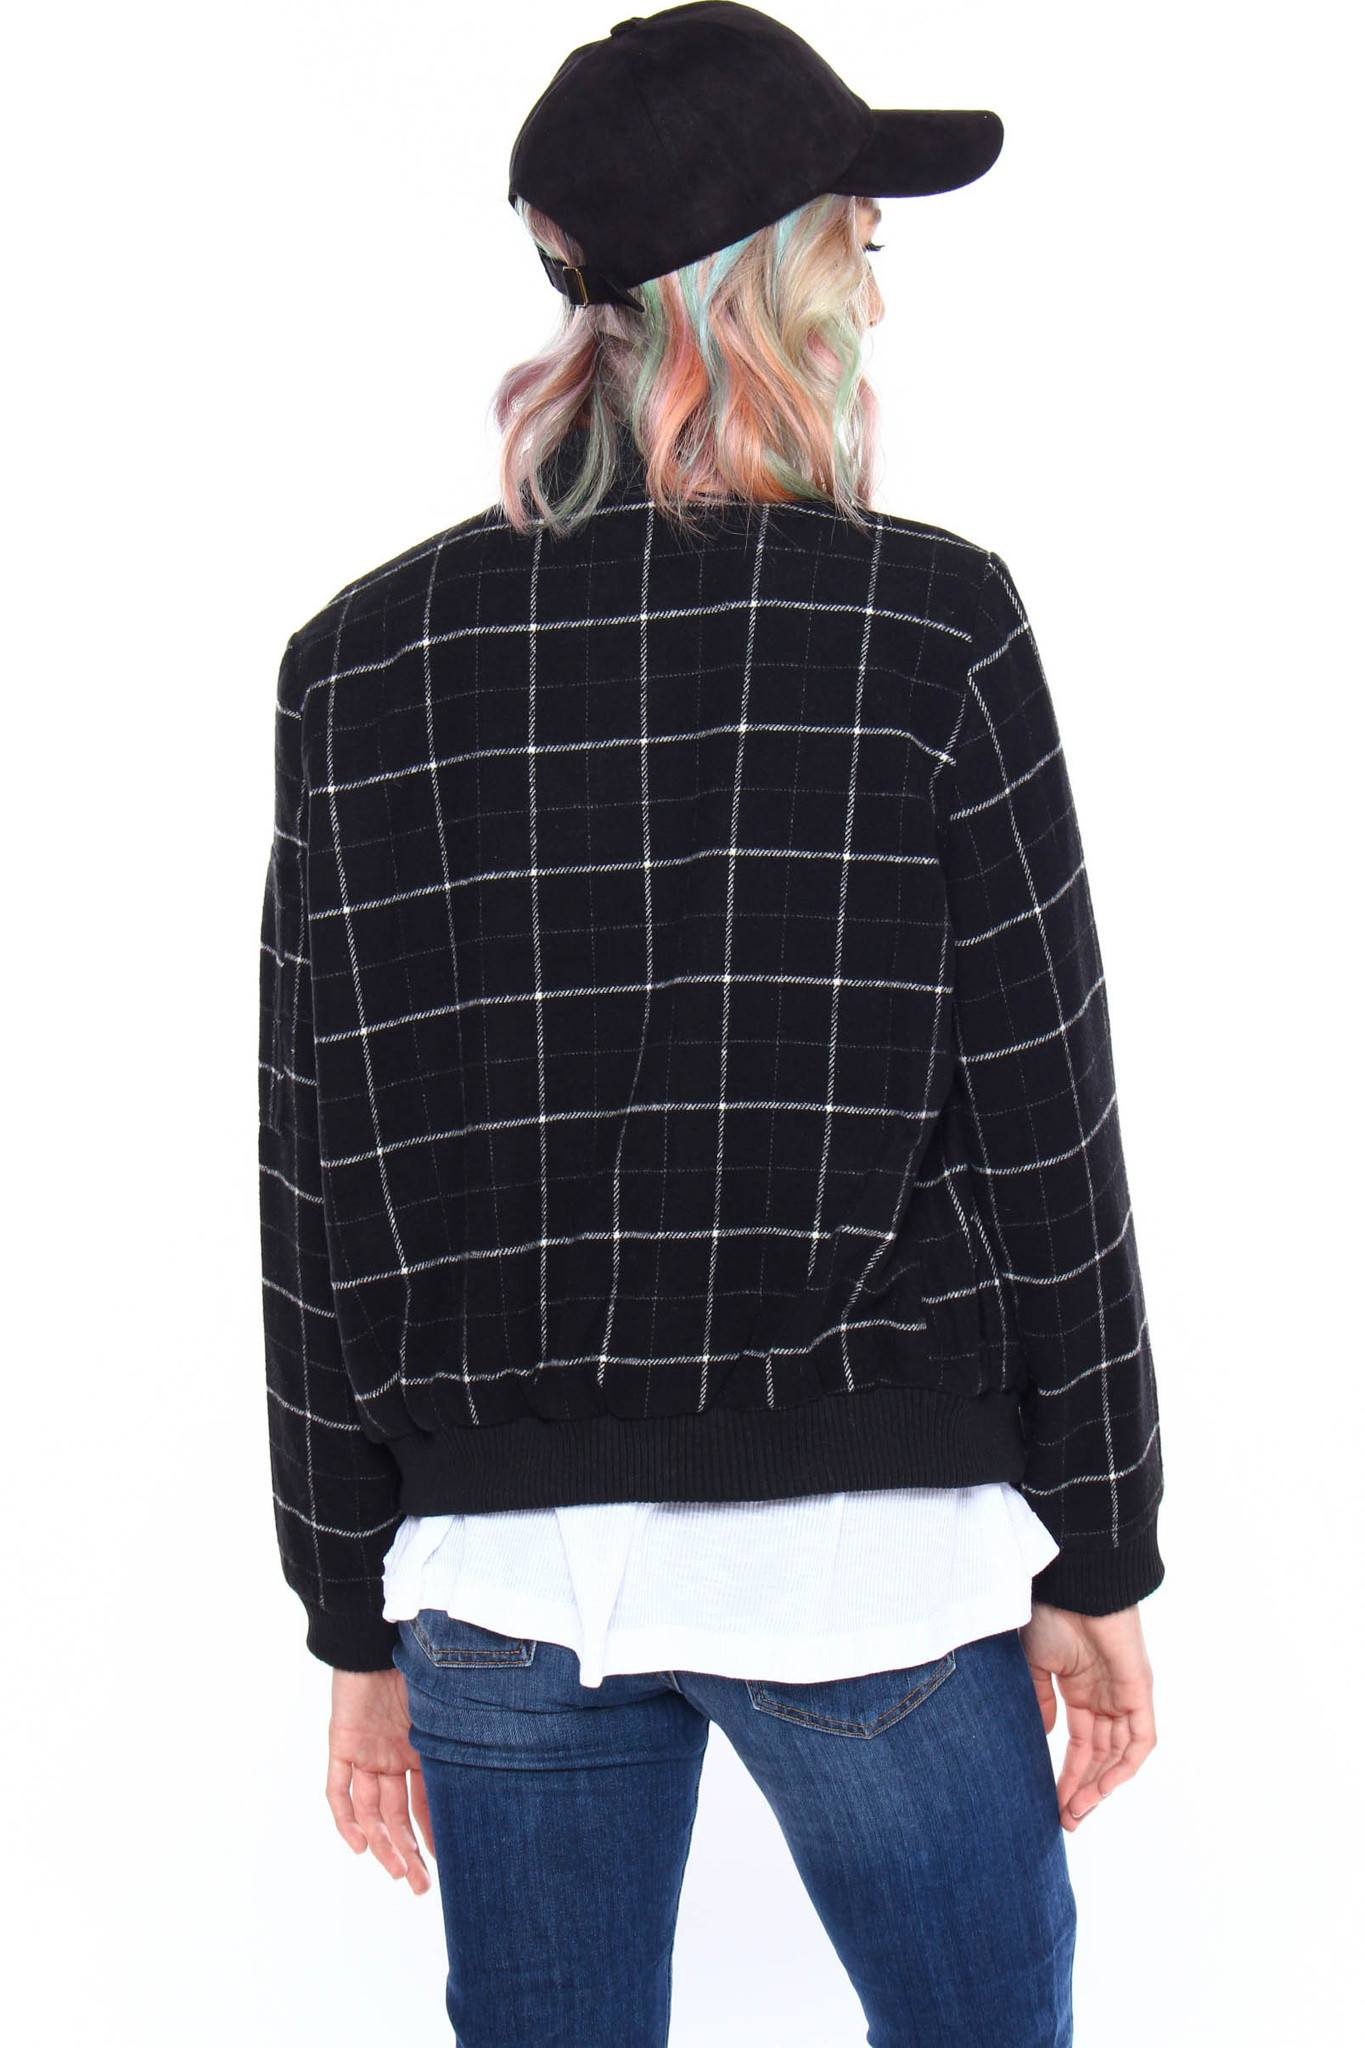 BB Dakota Vick Bomber Jacket